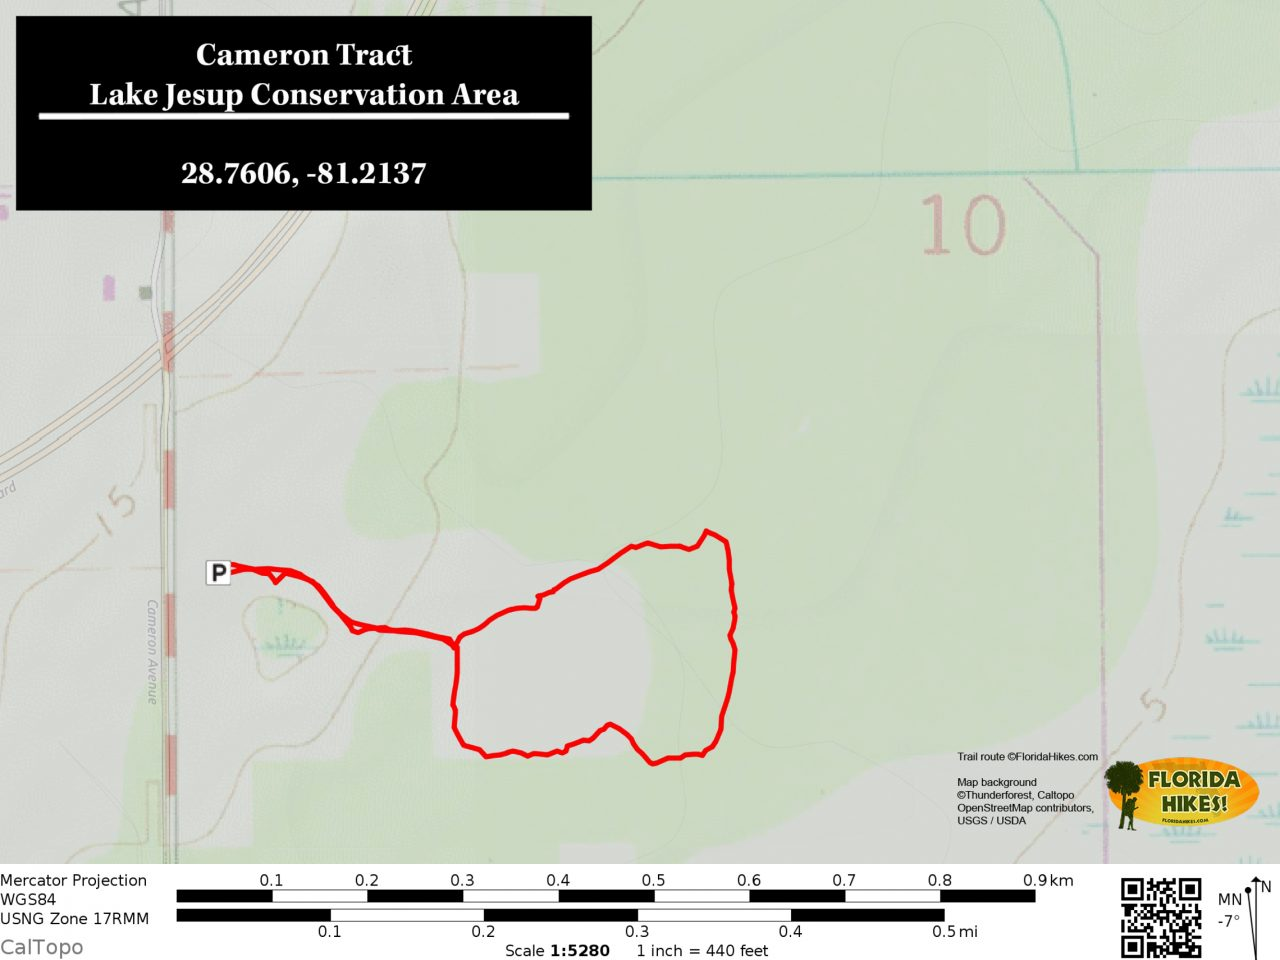 Lake Jesup Cameron Tract trail map